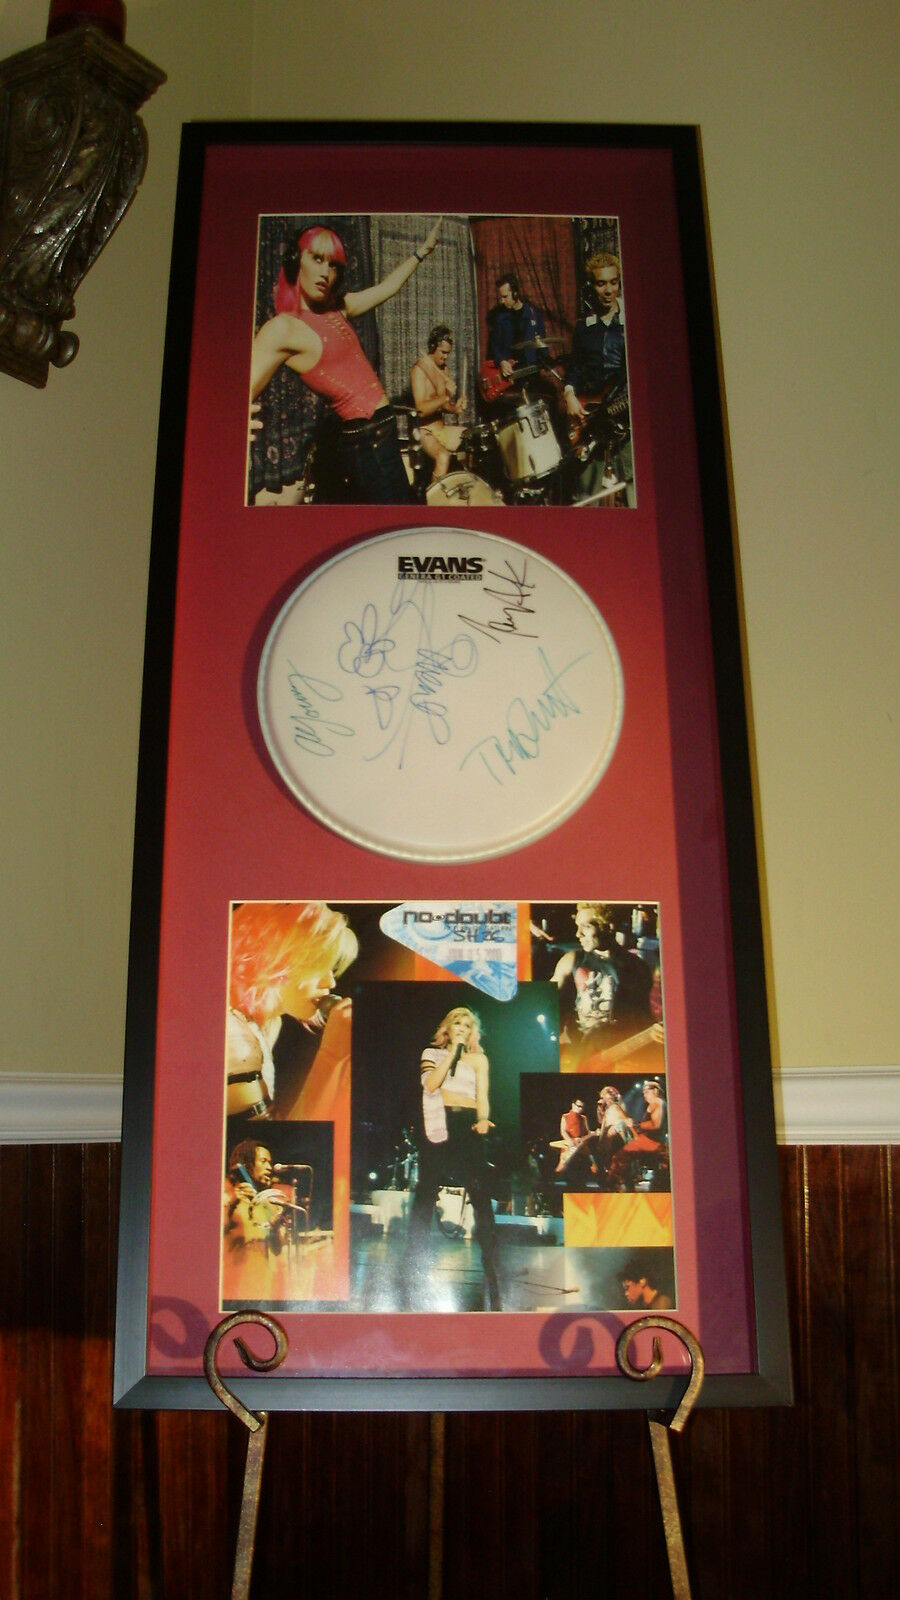 NO DOUBT - GWEN STEFANI - AUTOGRAPHED / SIGNED DRUMHEAD RETURN OF SATURN CD TOUR